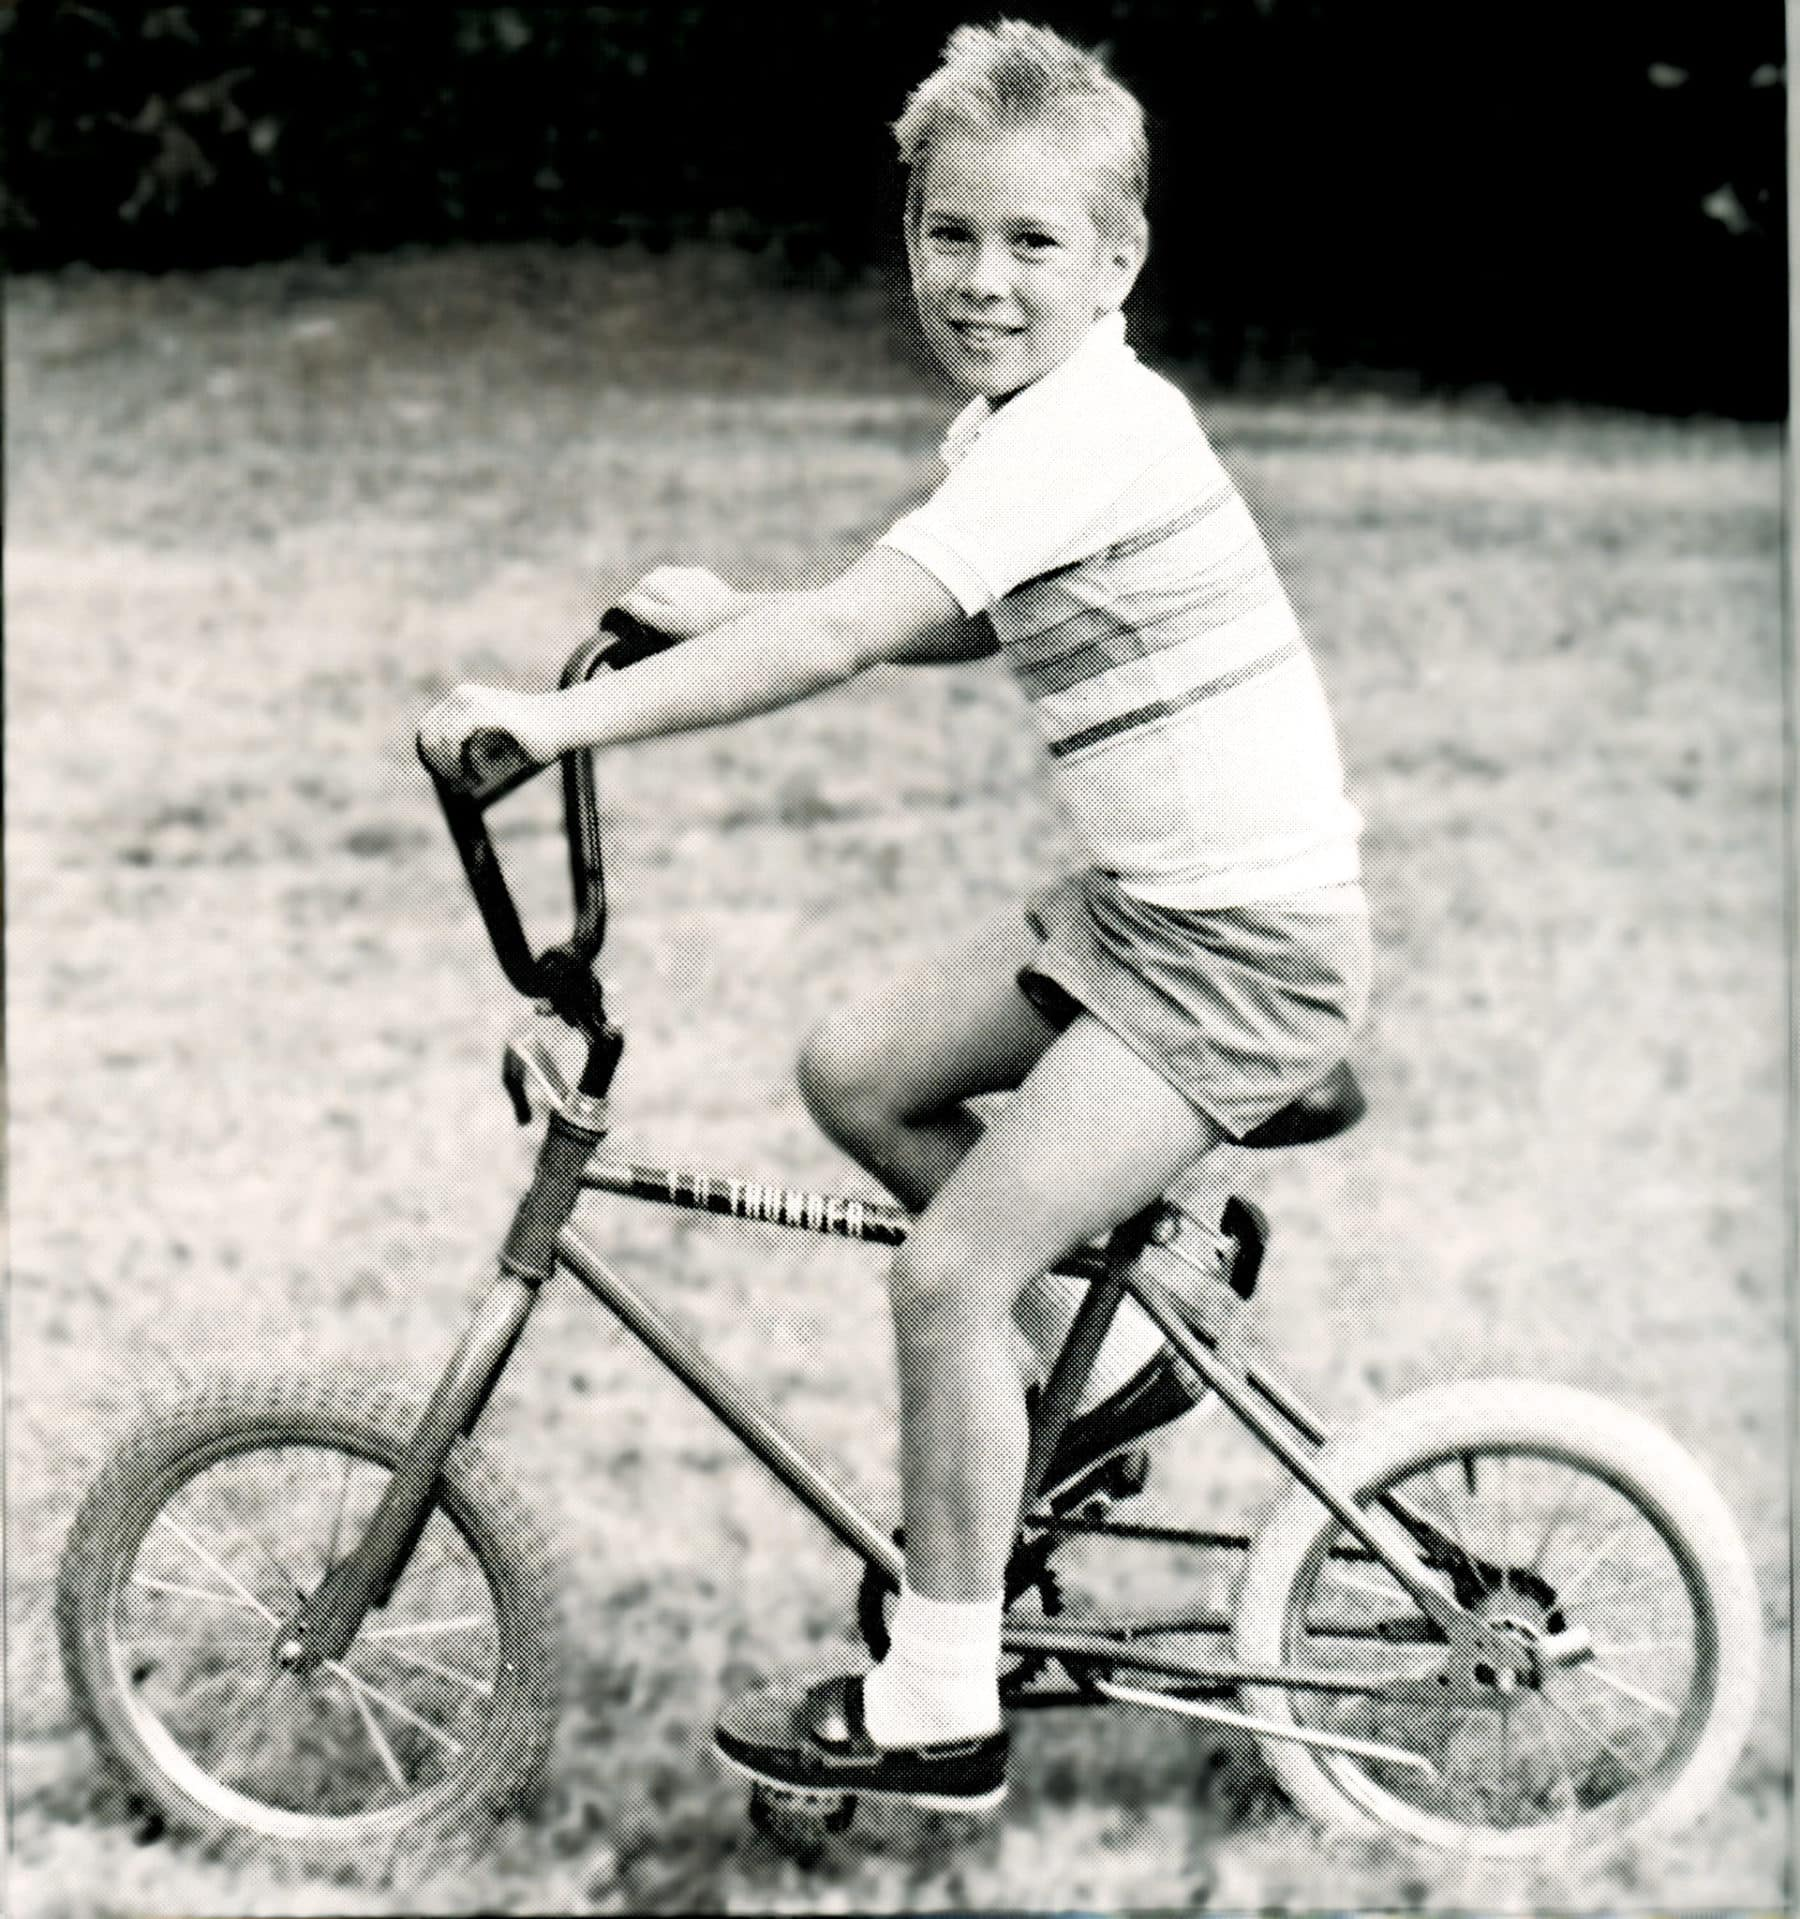 1989 Boy on Bike